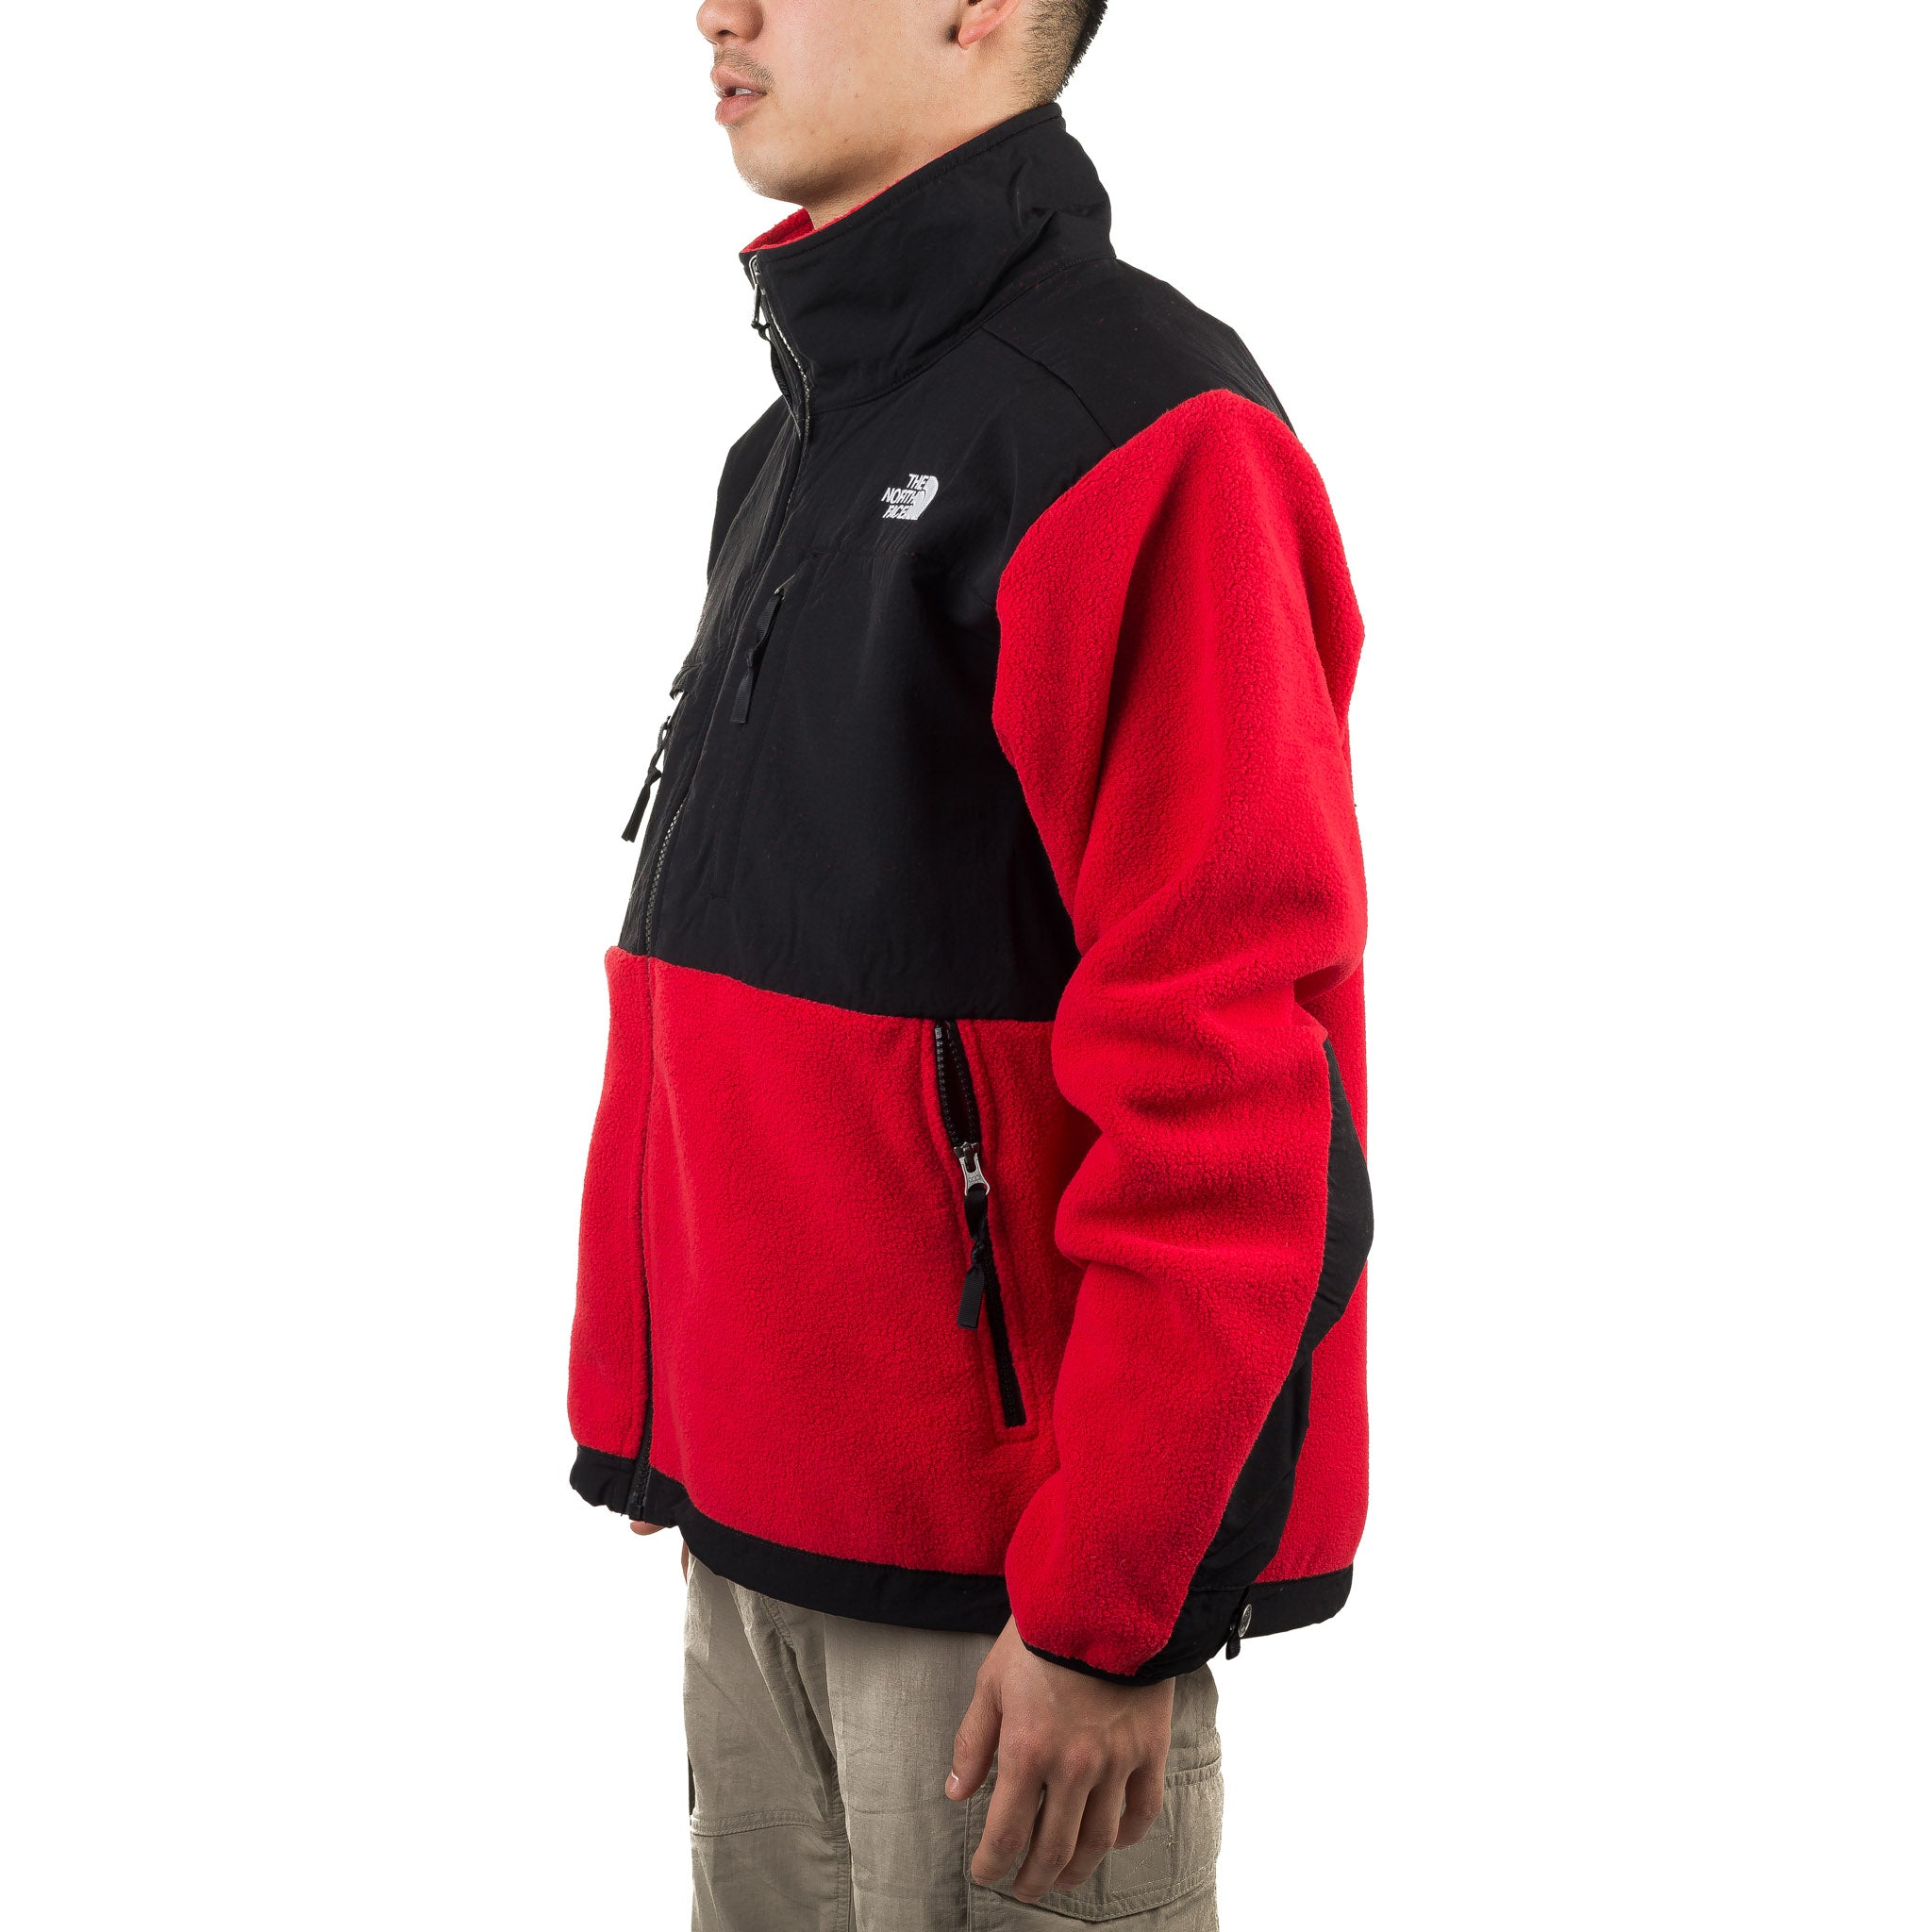 TNF Denali 95 Retro Jacket Black/Red